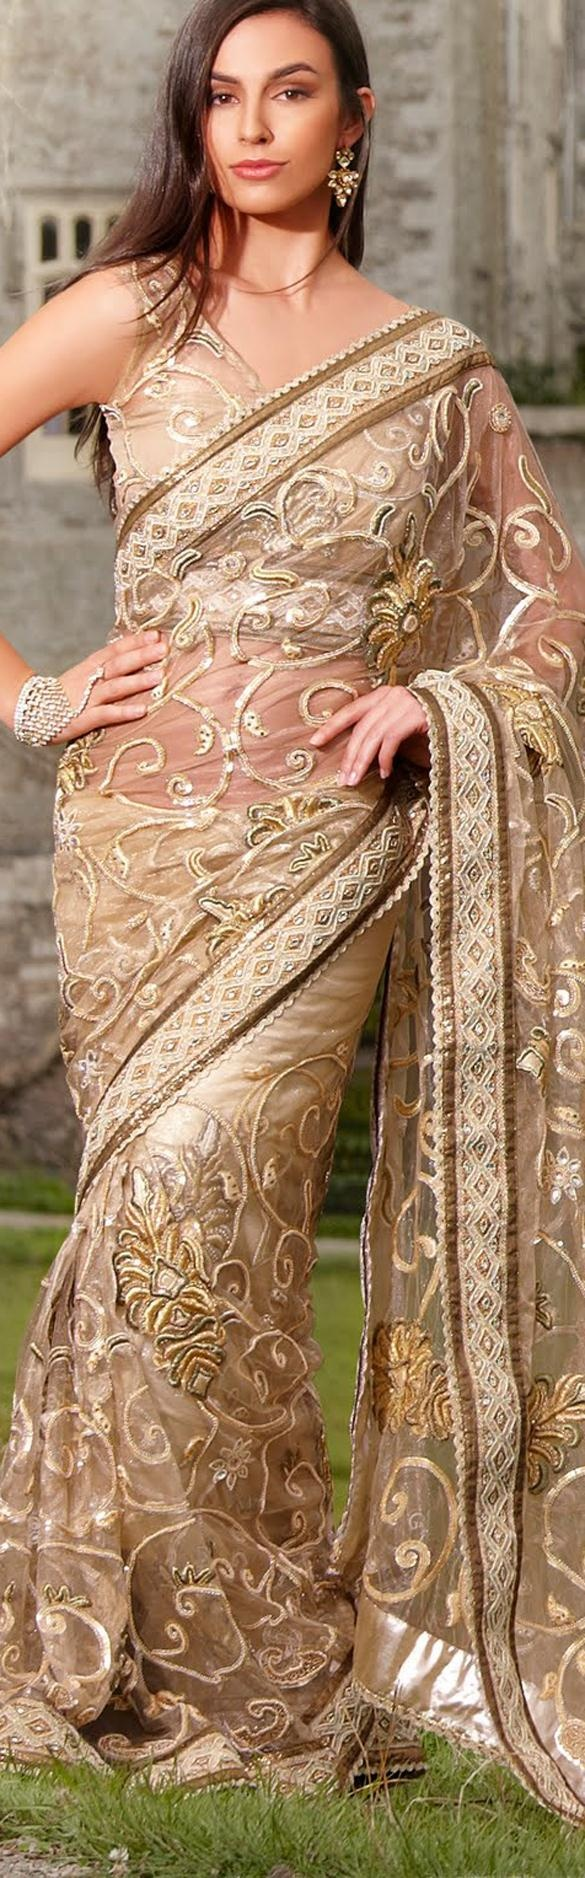 $231.58 Beige Net Latest Fashion Saree 16755 With Unstitched Blouse